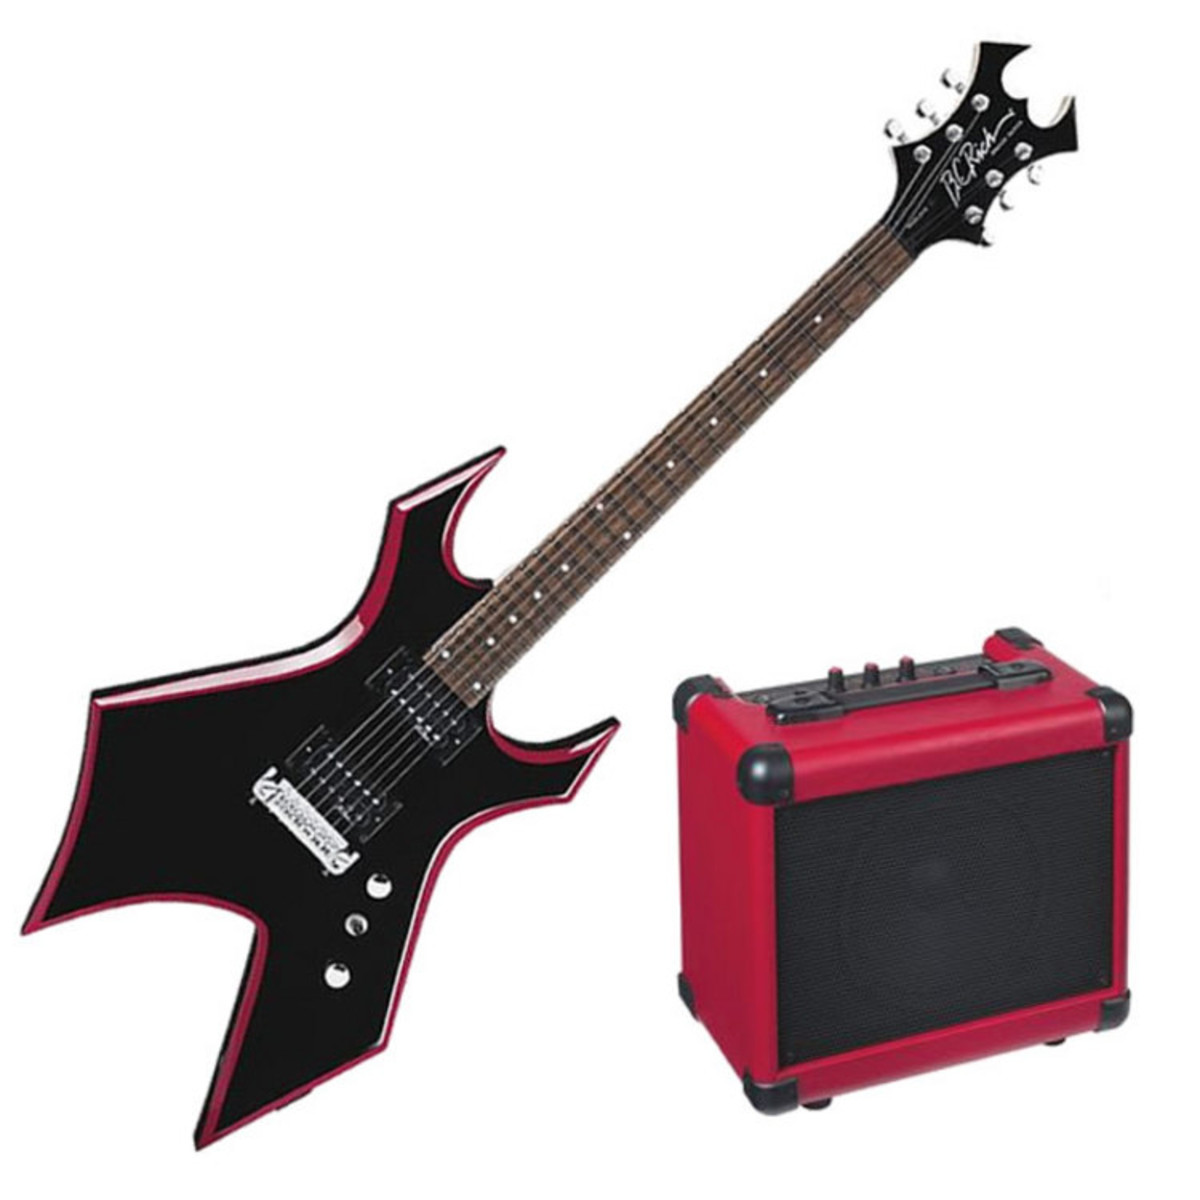 disc bc rich red bevel electric guitar warlock pack  bevelpack  loading zoom